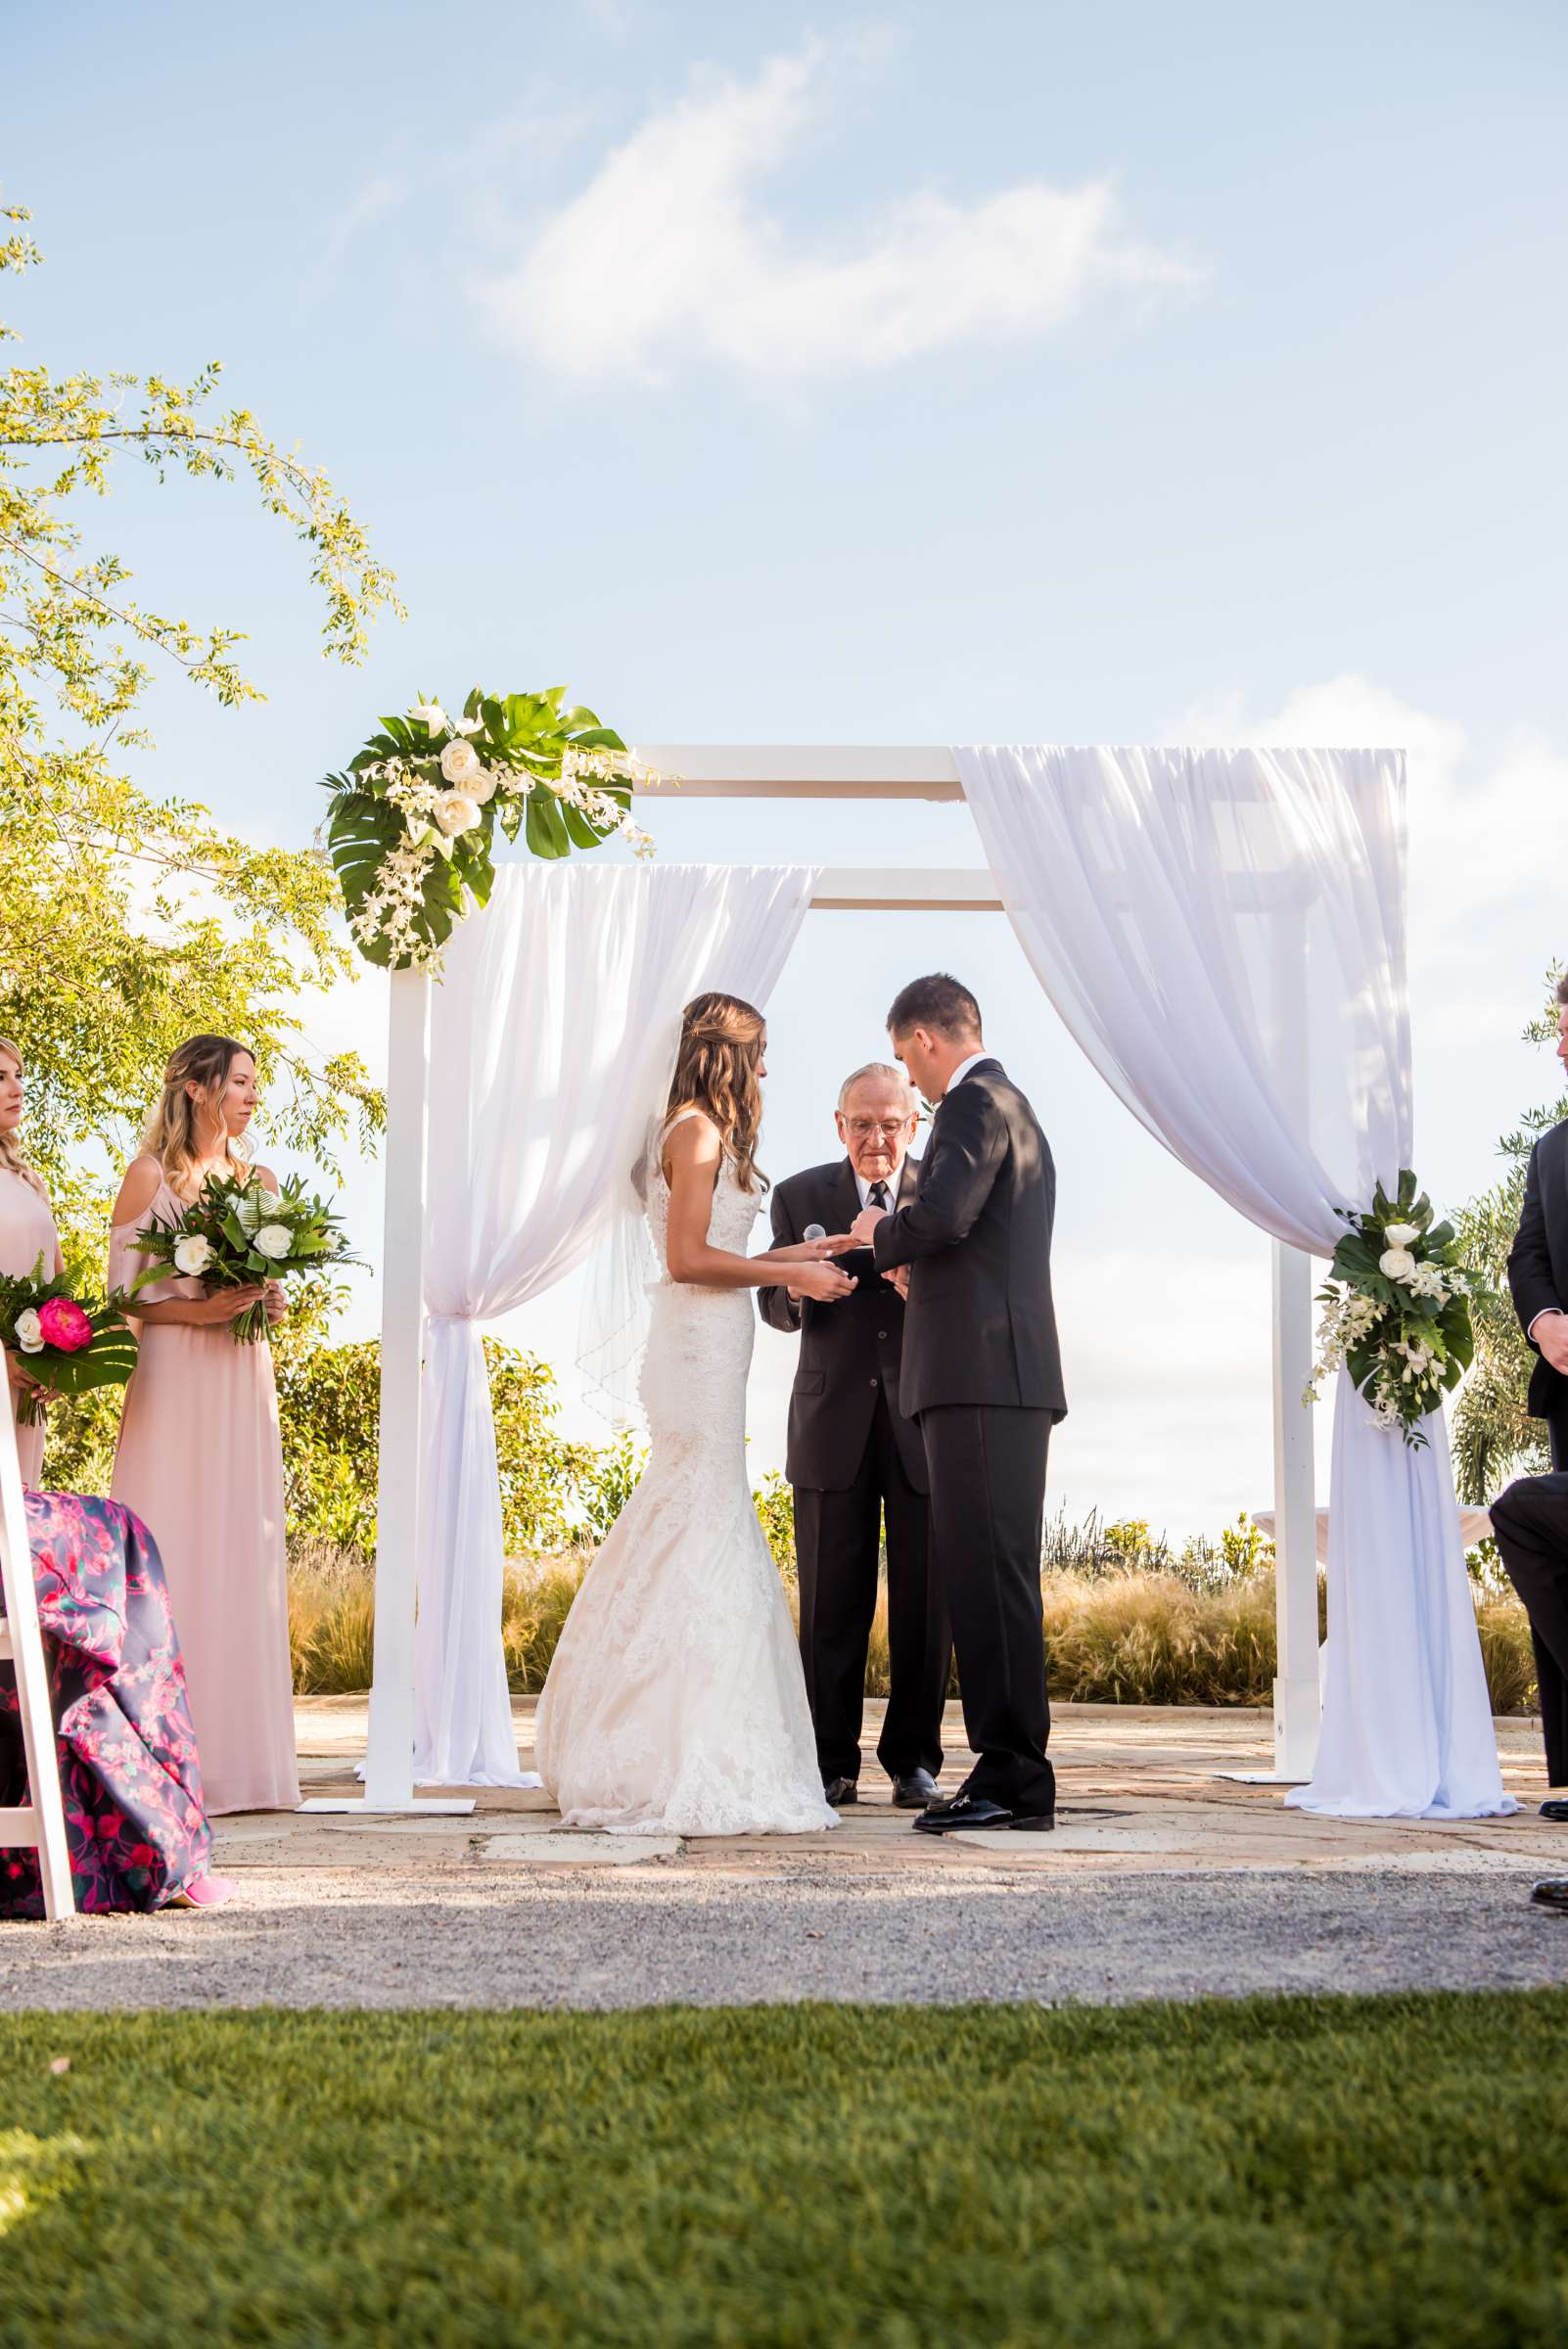 Sheraton Carlsbad Resort and Spa Wedding coordinated by Sweet Blossom Weddings, Tayla and Andrew Wedding Photo #479859 by True Photography